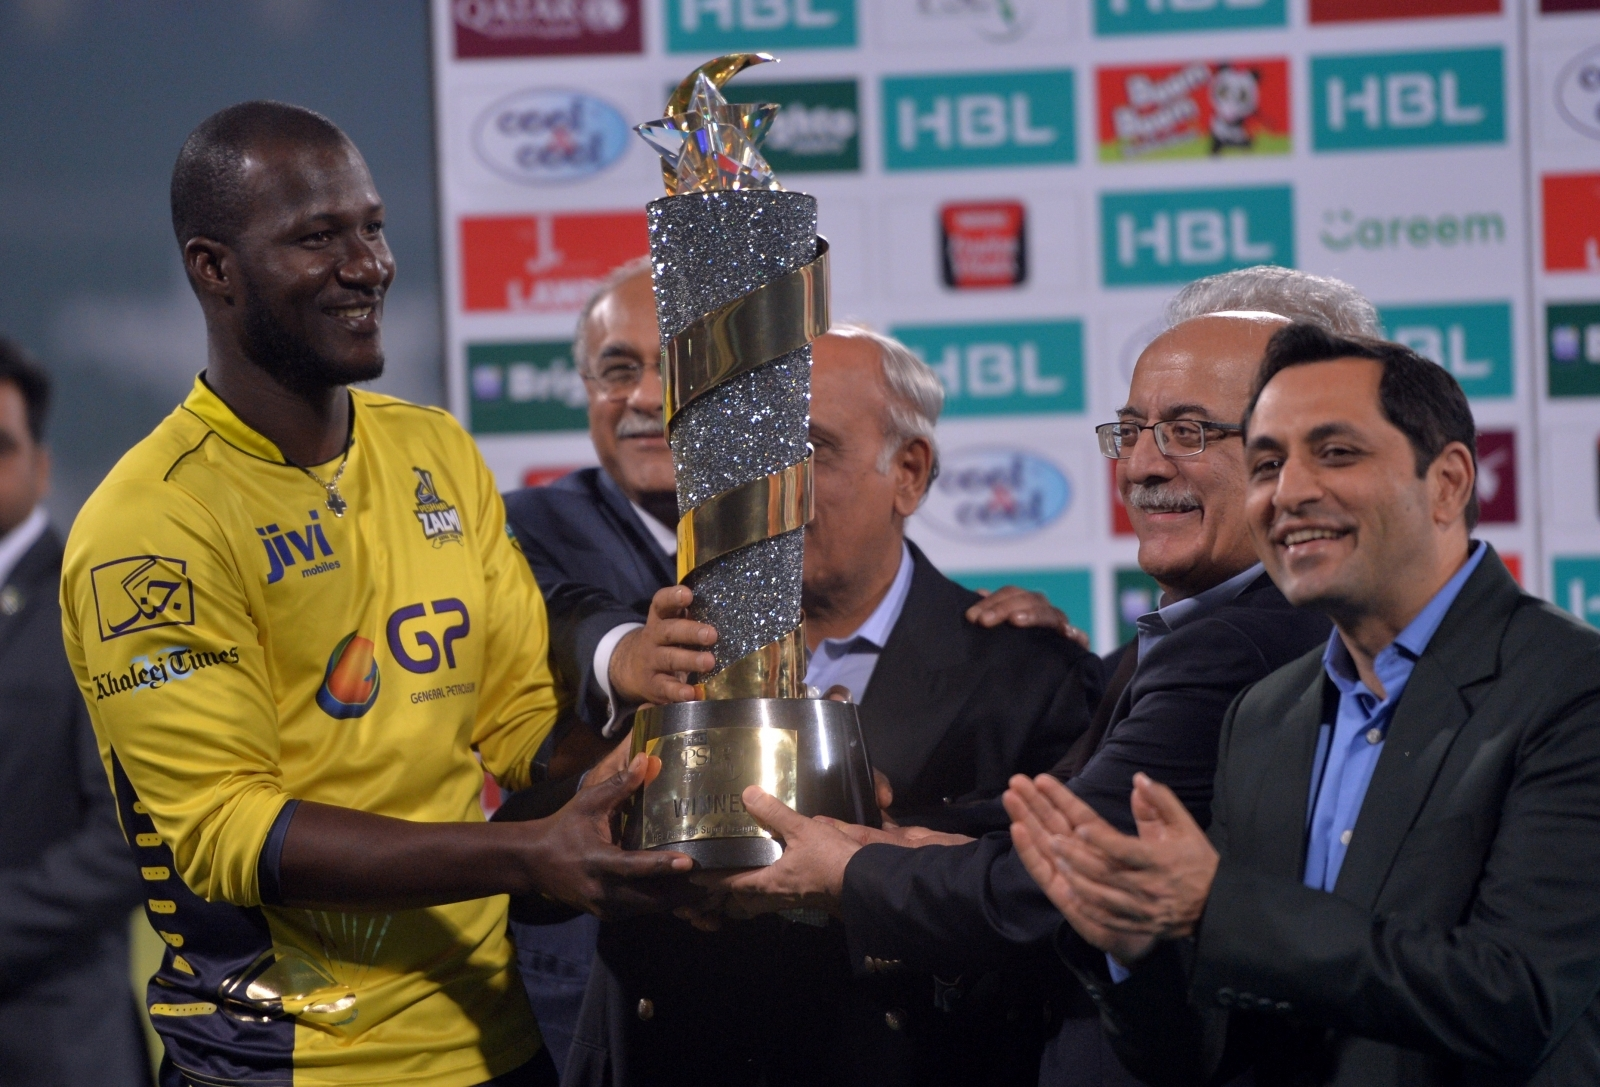 PSL 2018: Multan Sultan win tournament opener against defending champions Peshawar Zalmi